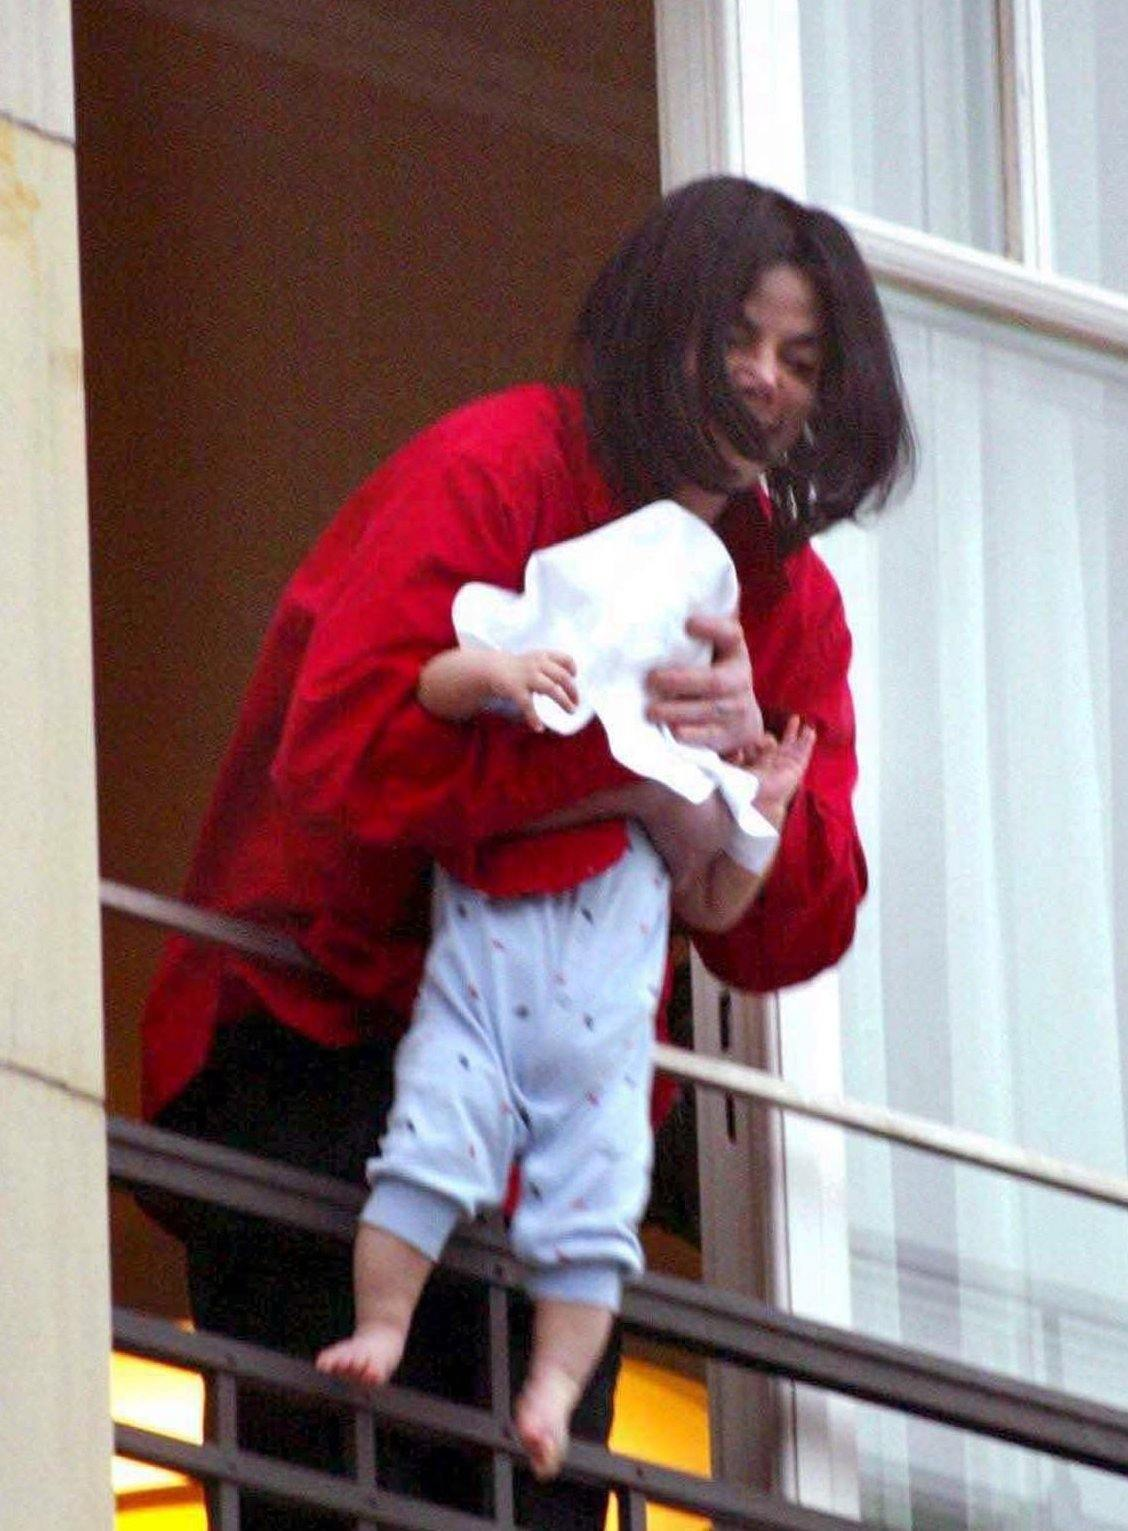 Michael Jackon dangles baby 20 Things You Didn't Know About Michael Jackson